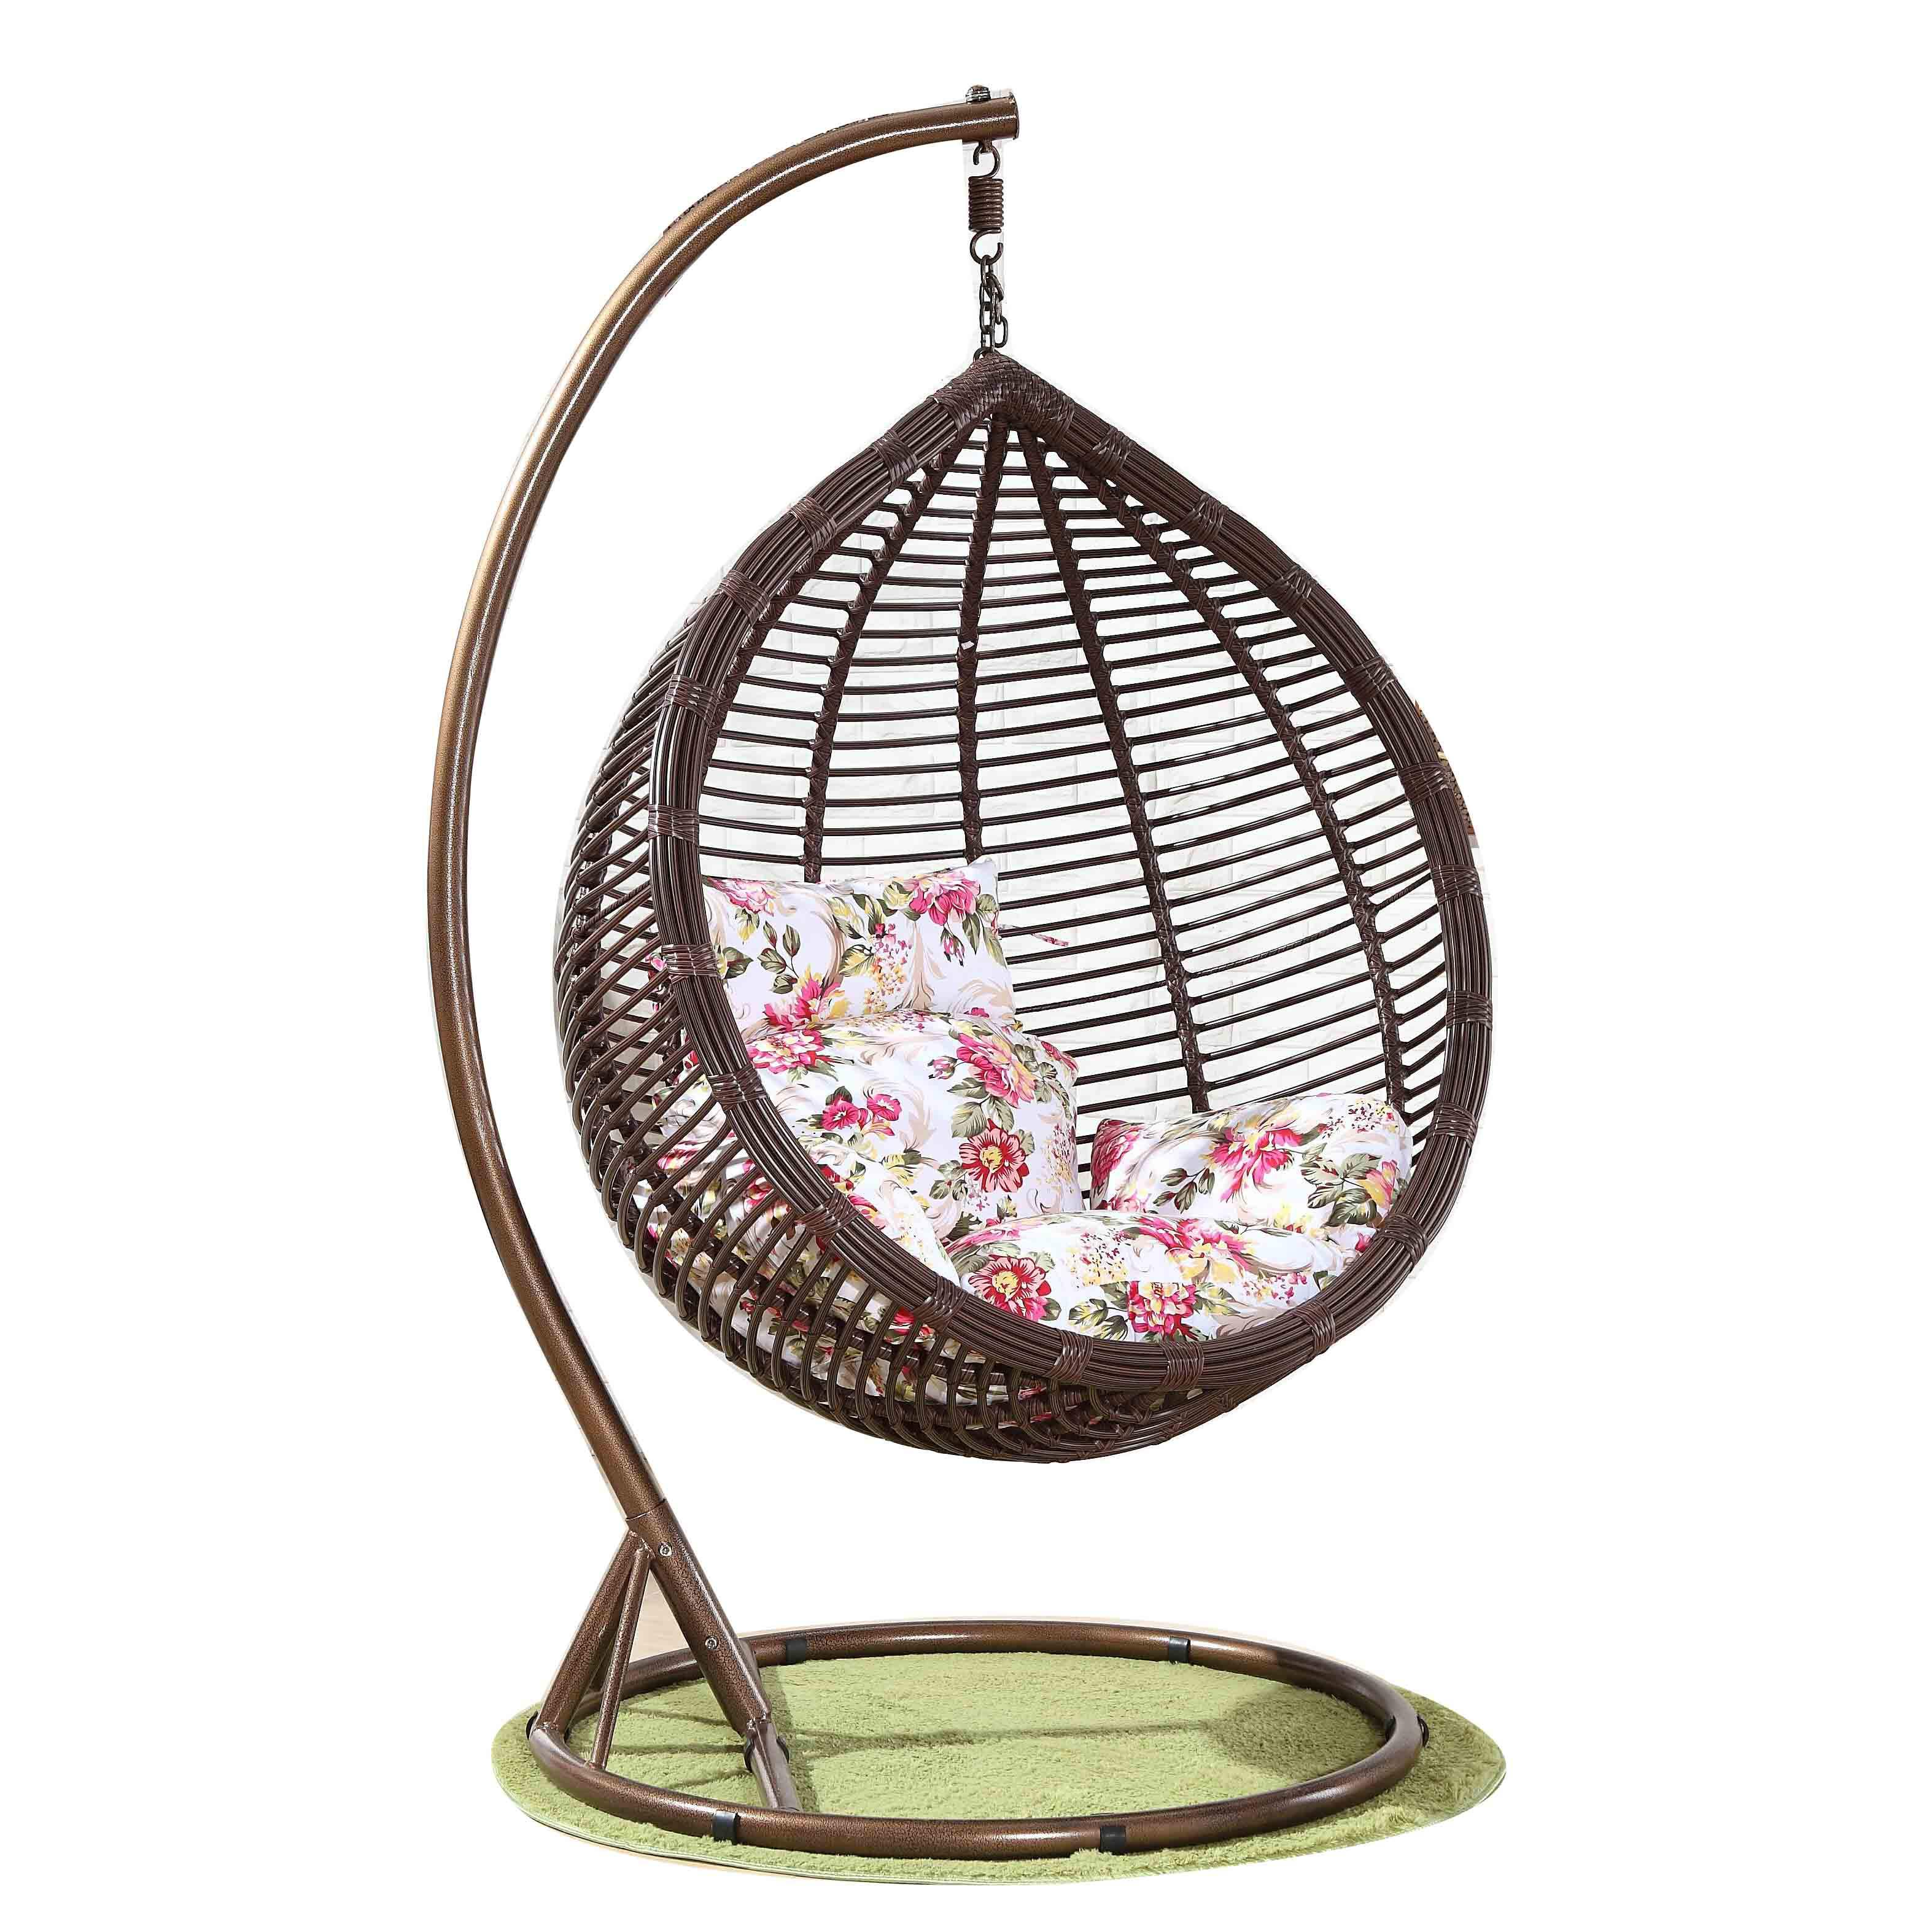 Hot Sales Popular Egg shaped Basket Garden Balcony Rattan Hanging Swing Chair